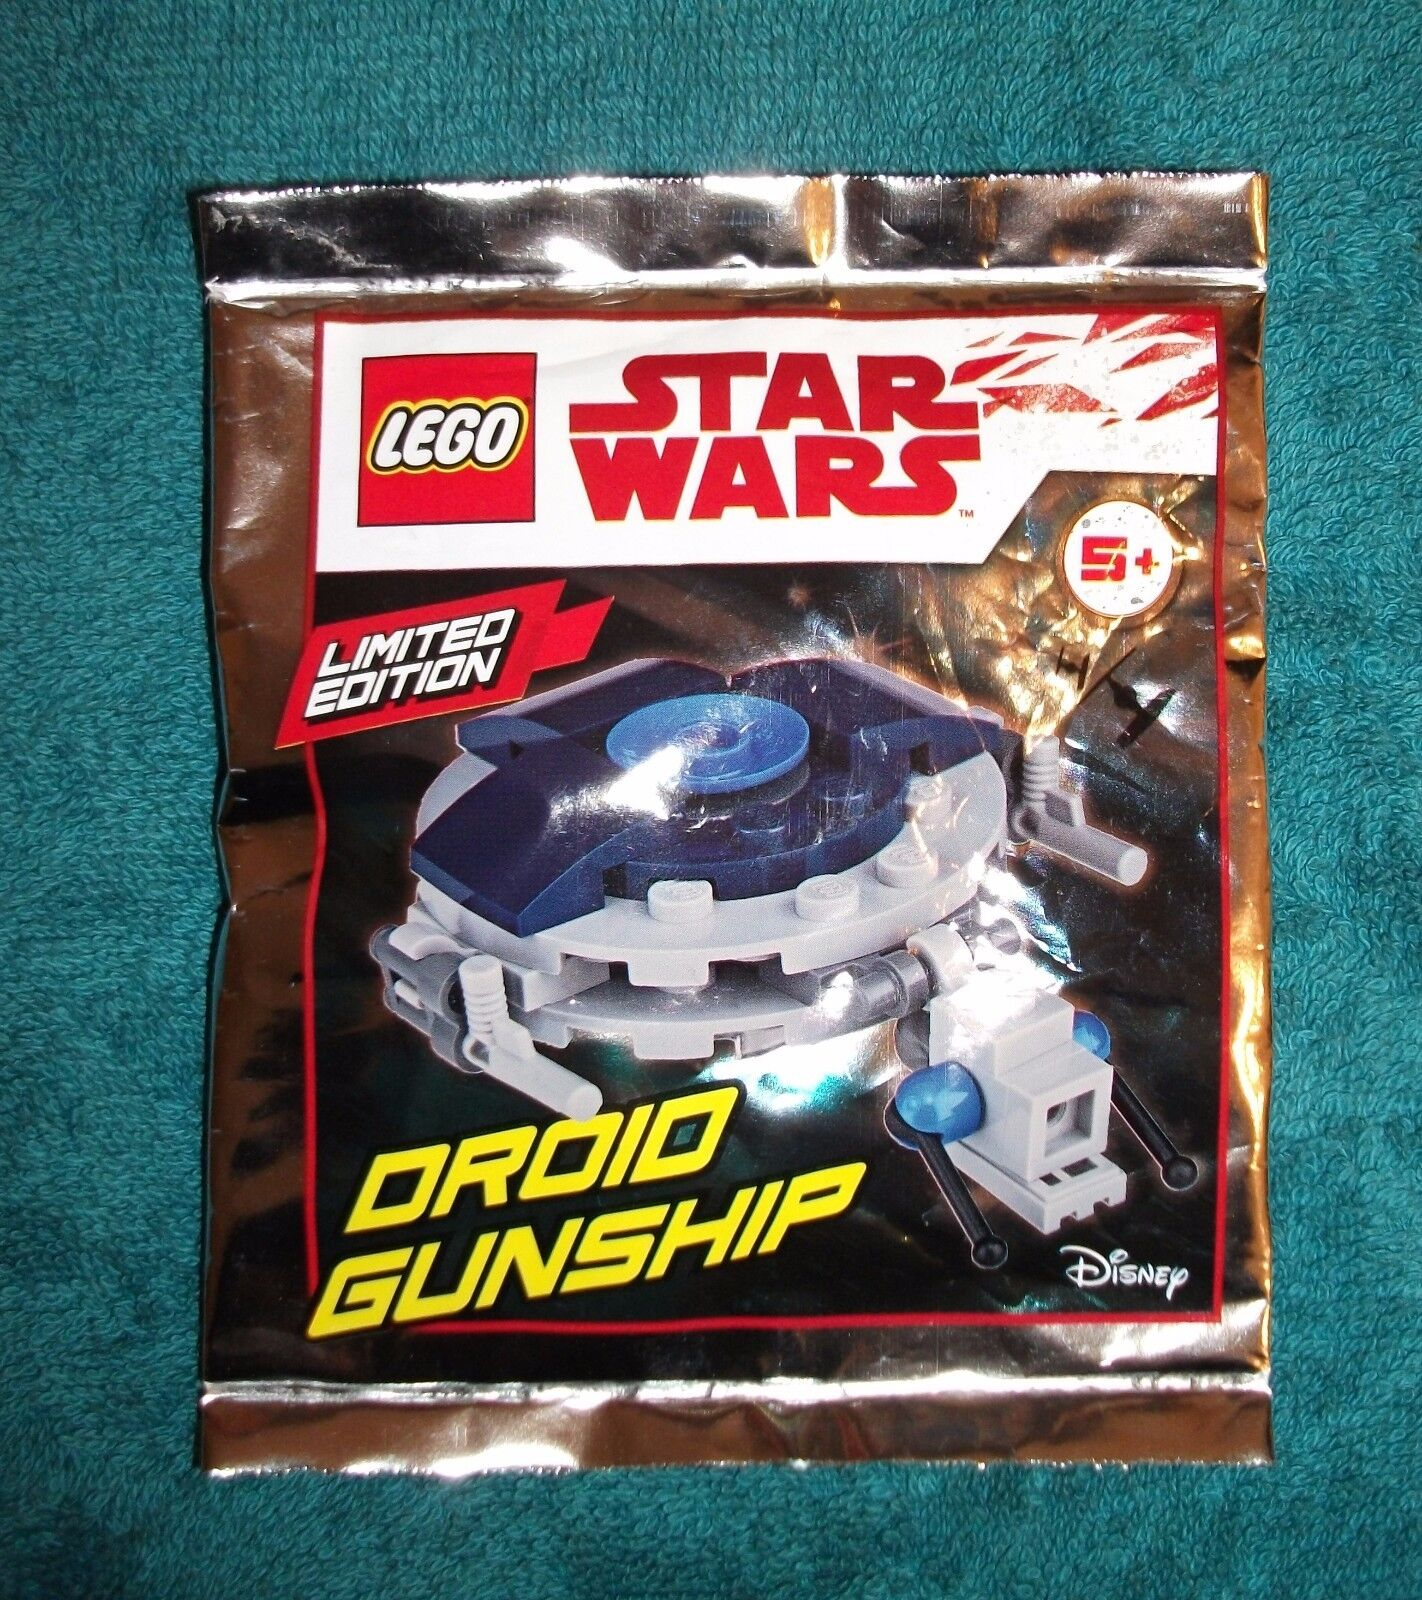 DROID GUNSHIP LEGO Star Wars - Sealed Promo Sachet PolyBag LIMITED EDITION